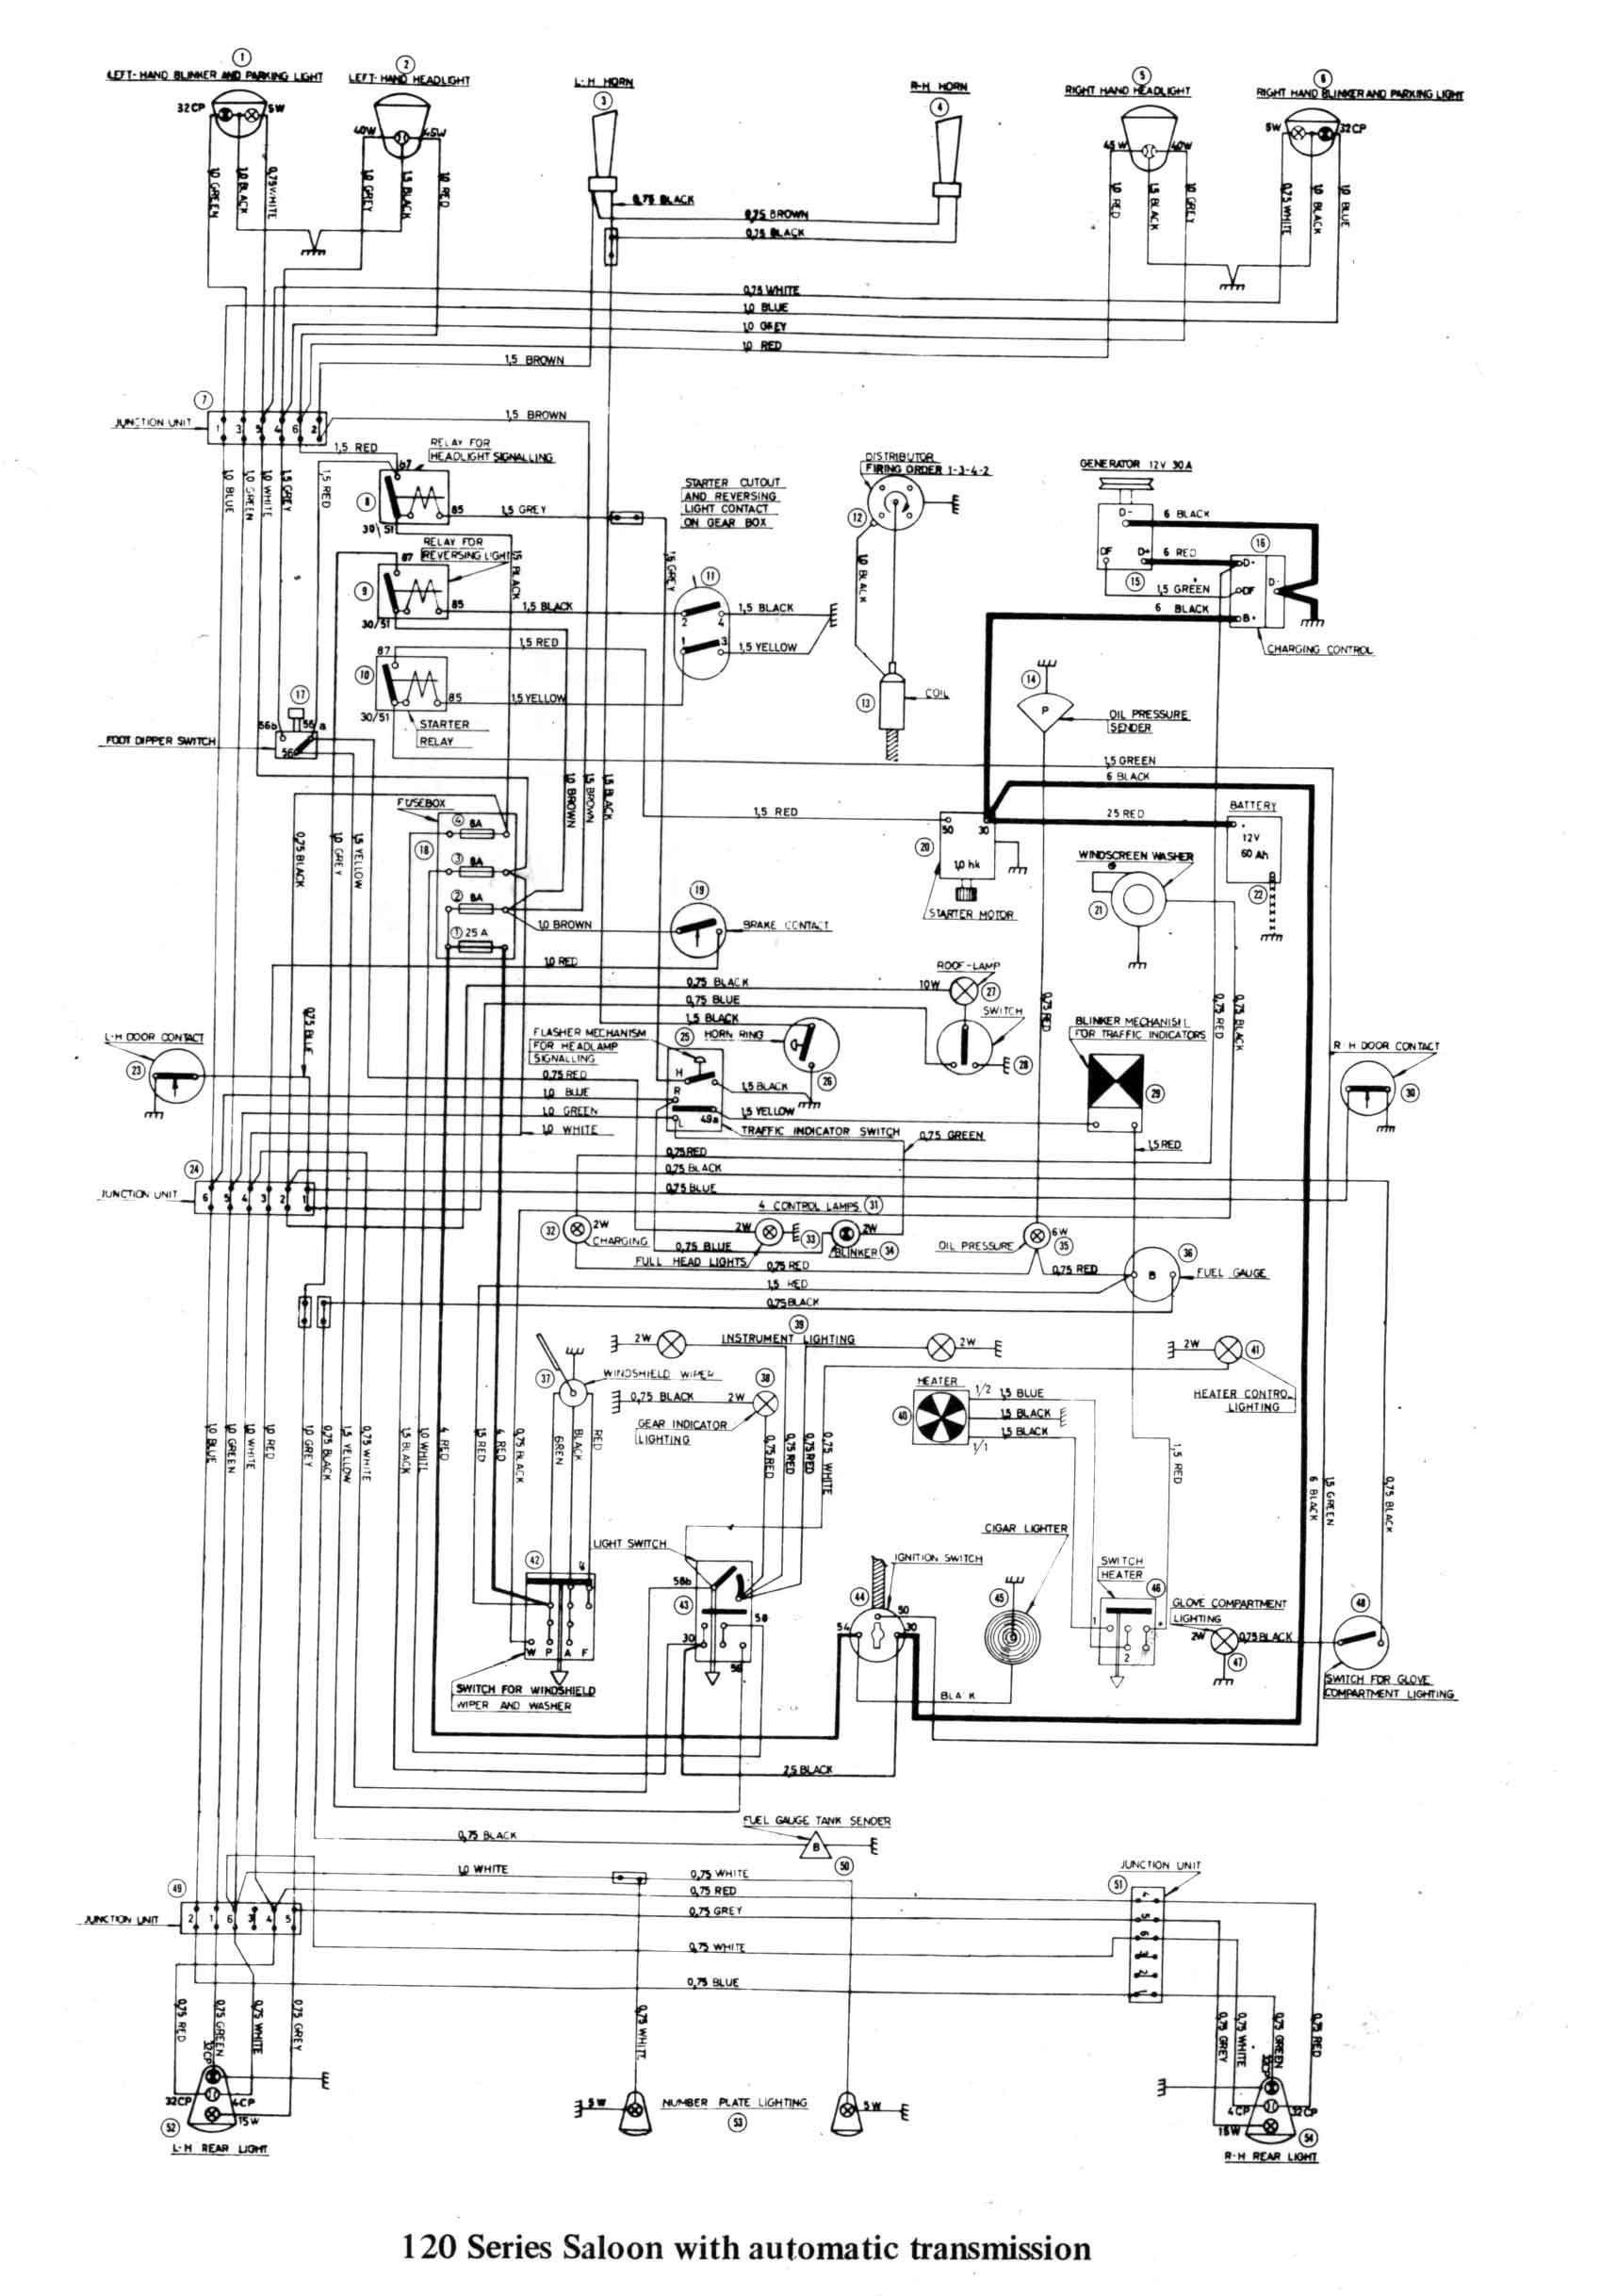 1998 isuzu Rodeo Engine Diagram Used Fuel Pump Relay Diagram • Electrical Outlet Symbol 2018 Of 1998 isuzu Rodeo Engine Diagram